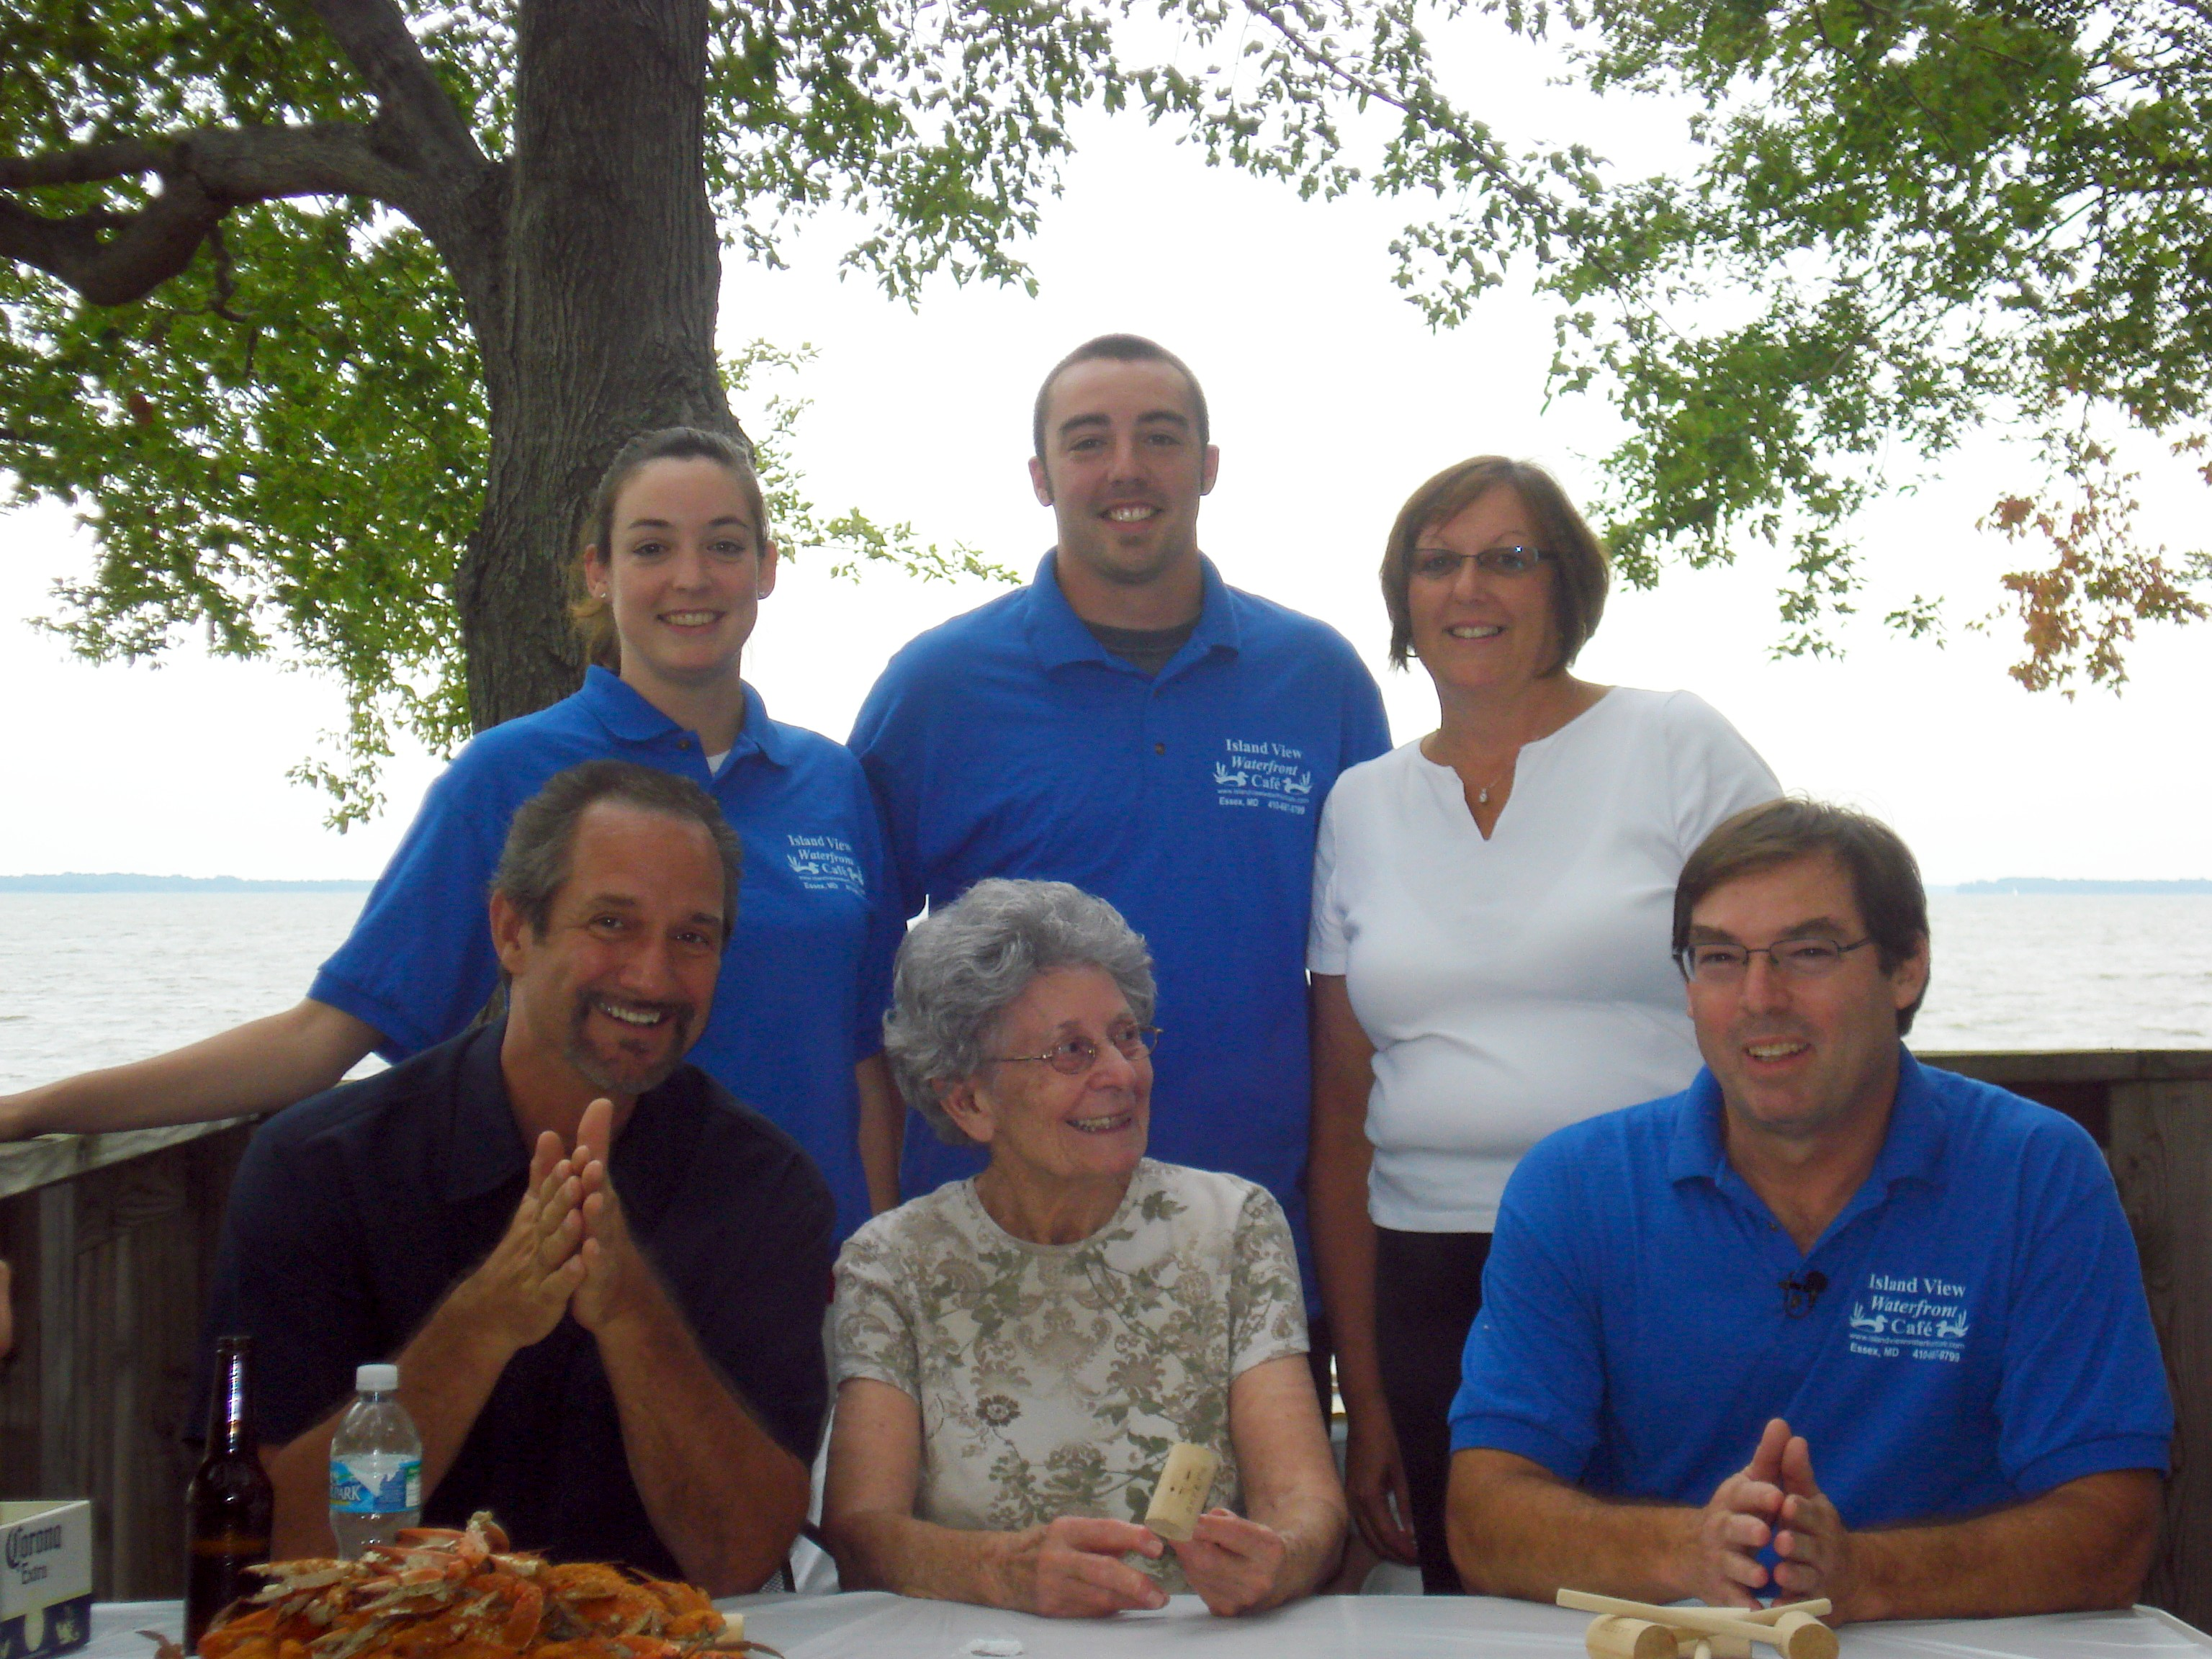 The Laing Family:     Ms. Fran, Bruce, Jessica, Bryan, Melissa, with Steve Rouse